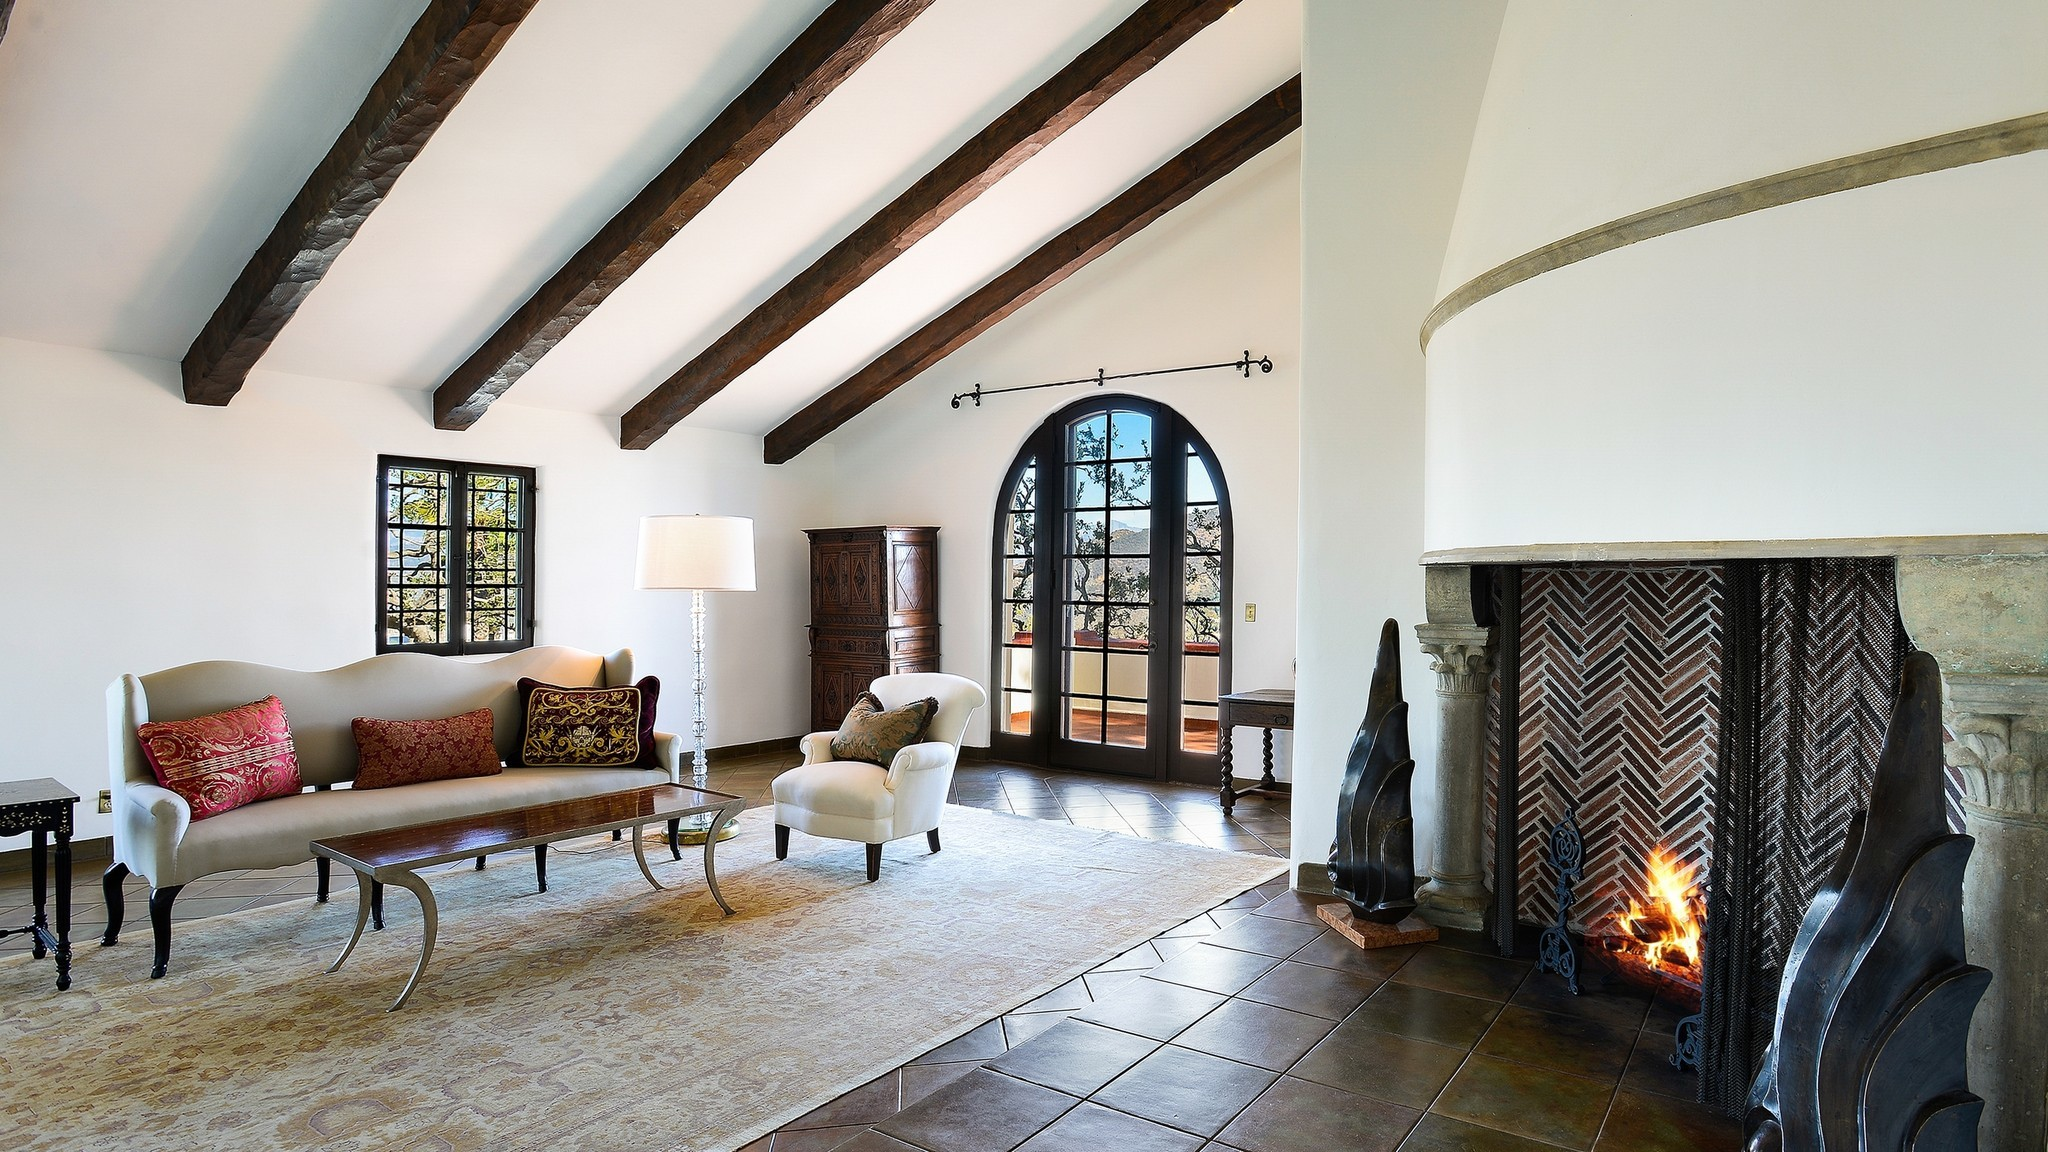 Hot Property  Andrew Getty  Miklos Rozsa  LA Times